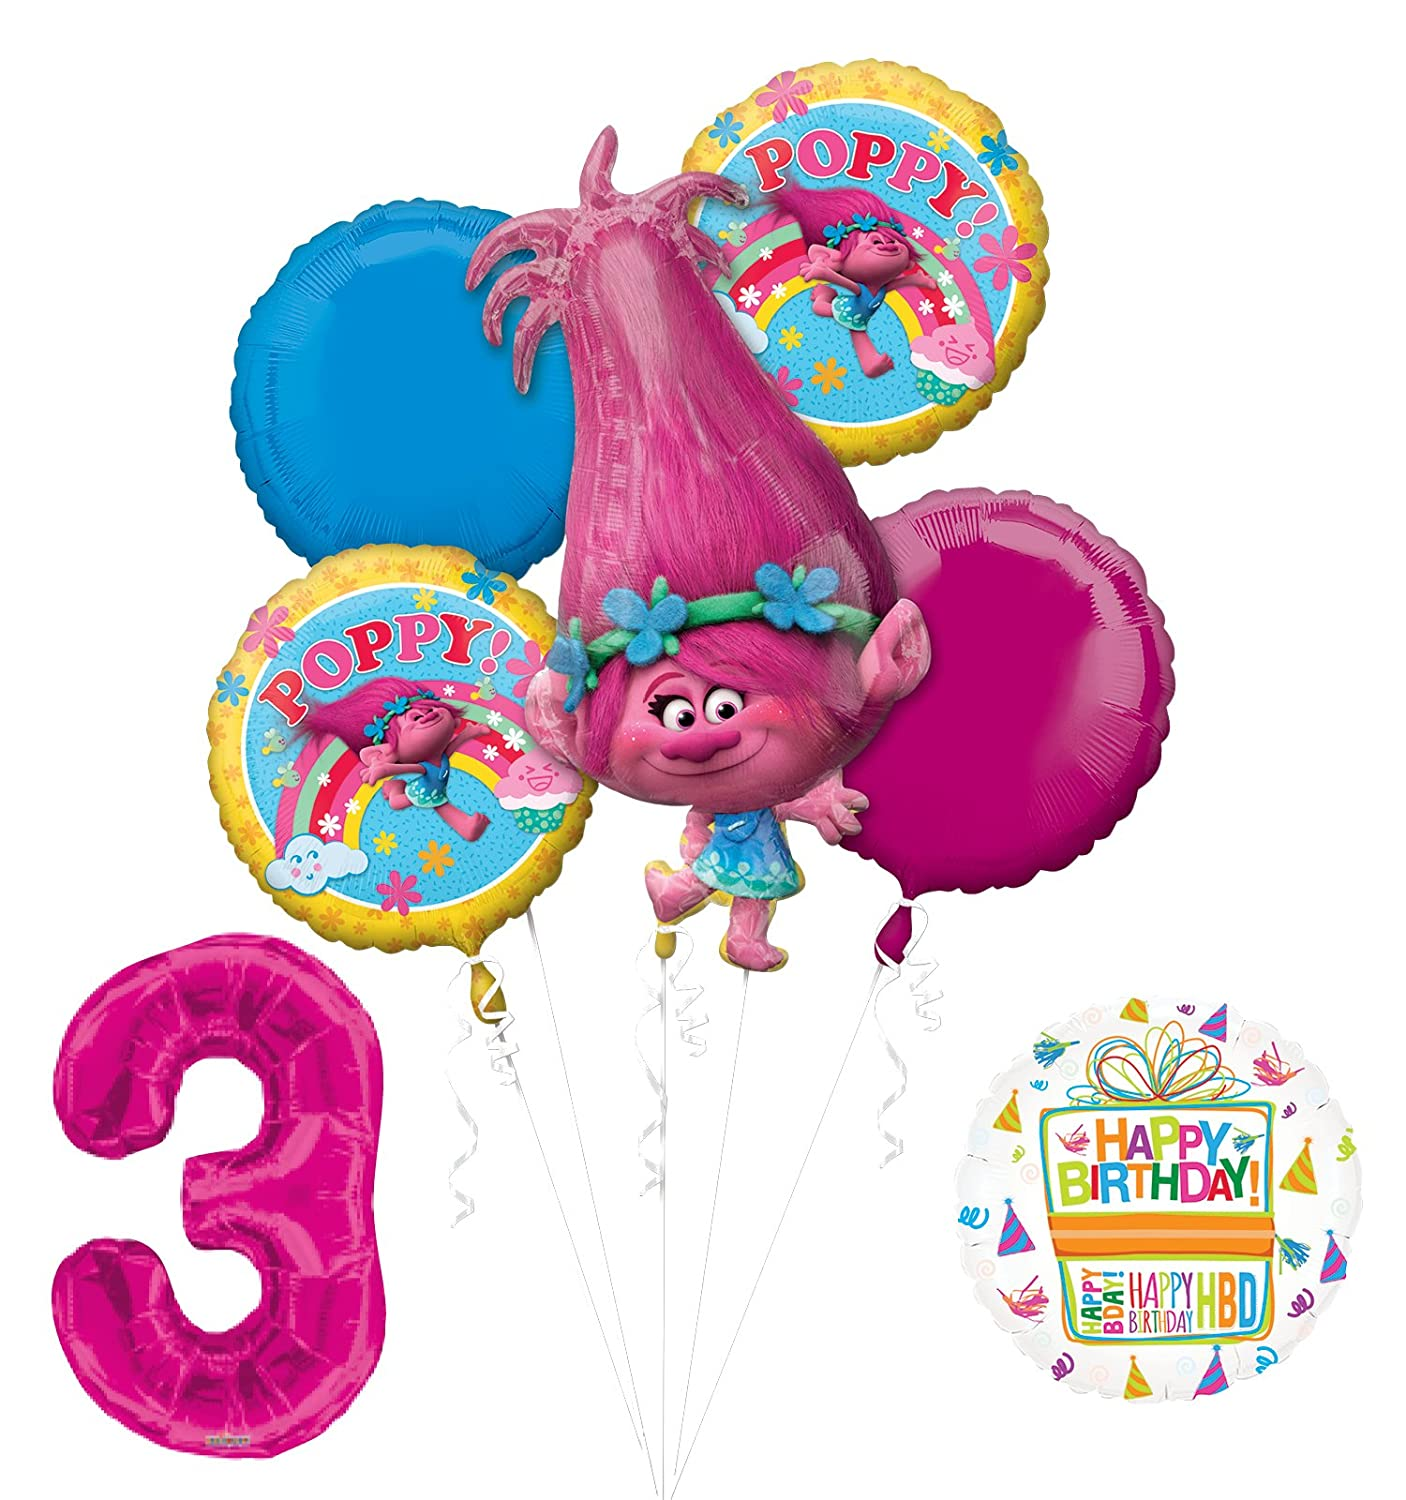 NEW TROLLS POPPY 3rd Birthday Party Supplies And Balloon Bouquet Decorations Mayflower